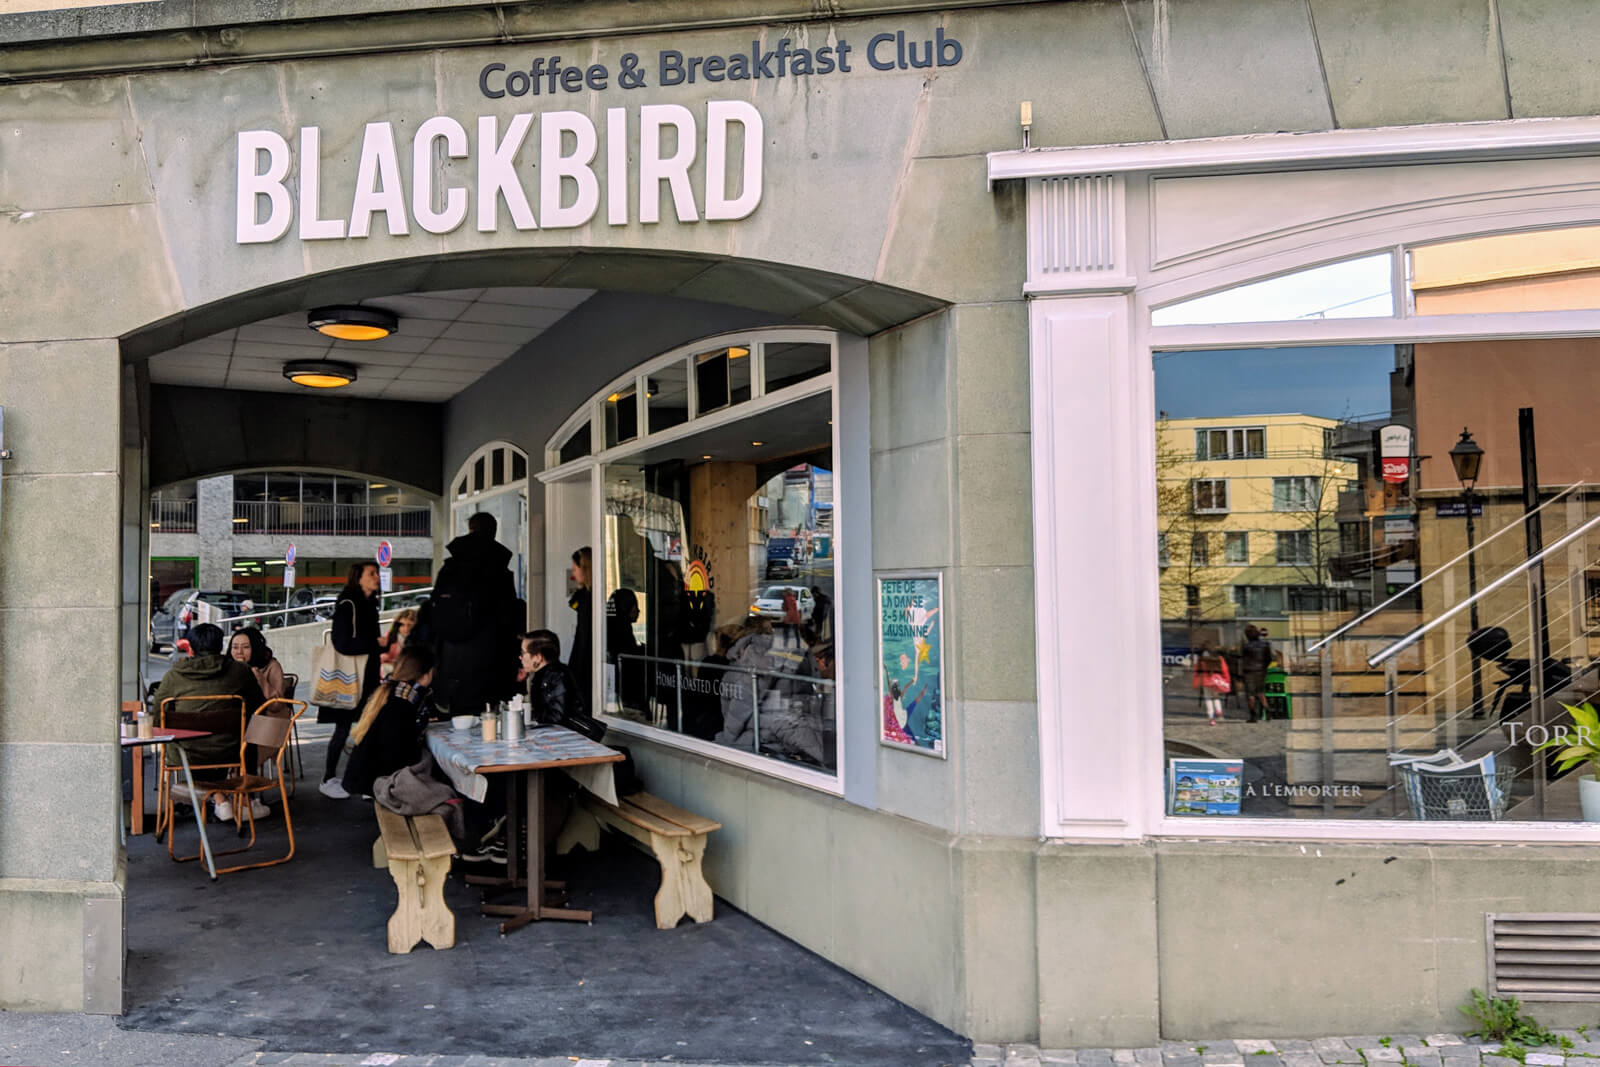 Blackbird Breakfast Club in Lausanne